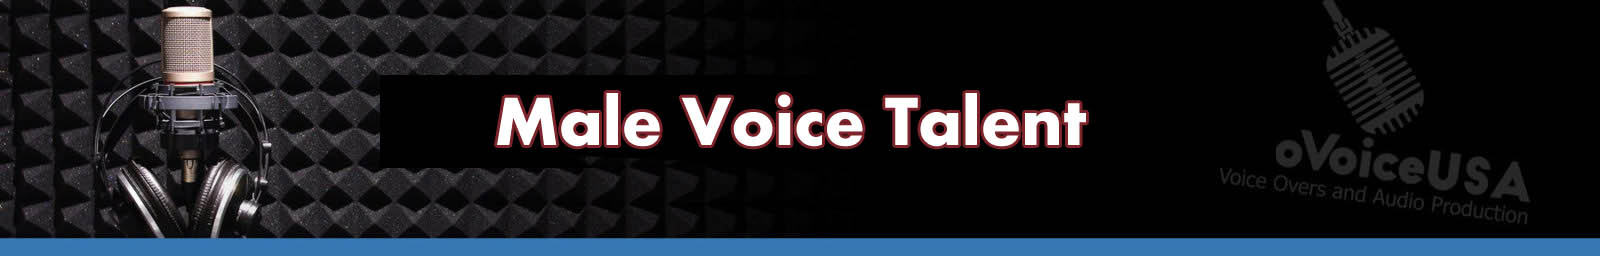 Male Voice Talent | American Voice Recording Service | ProVoice USA